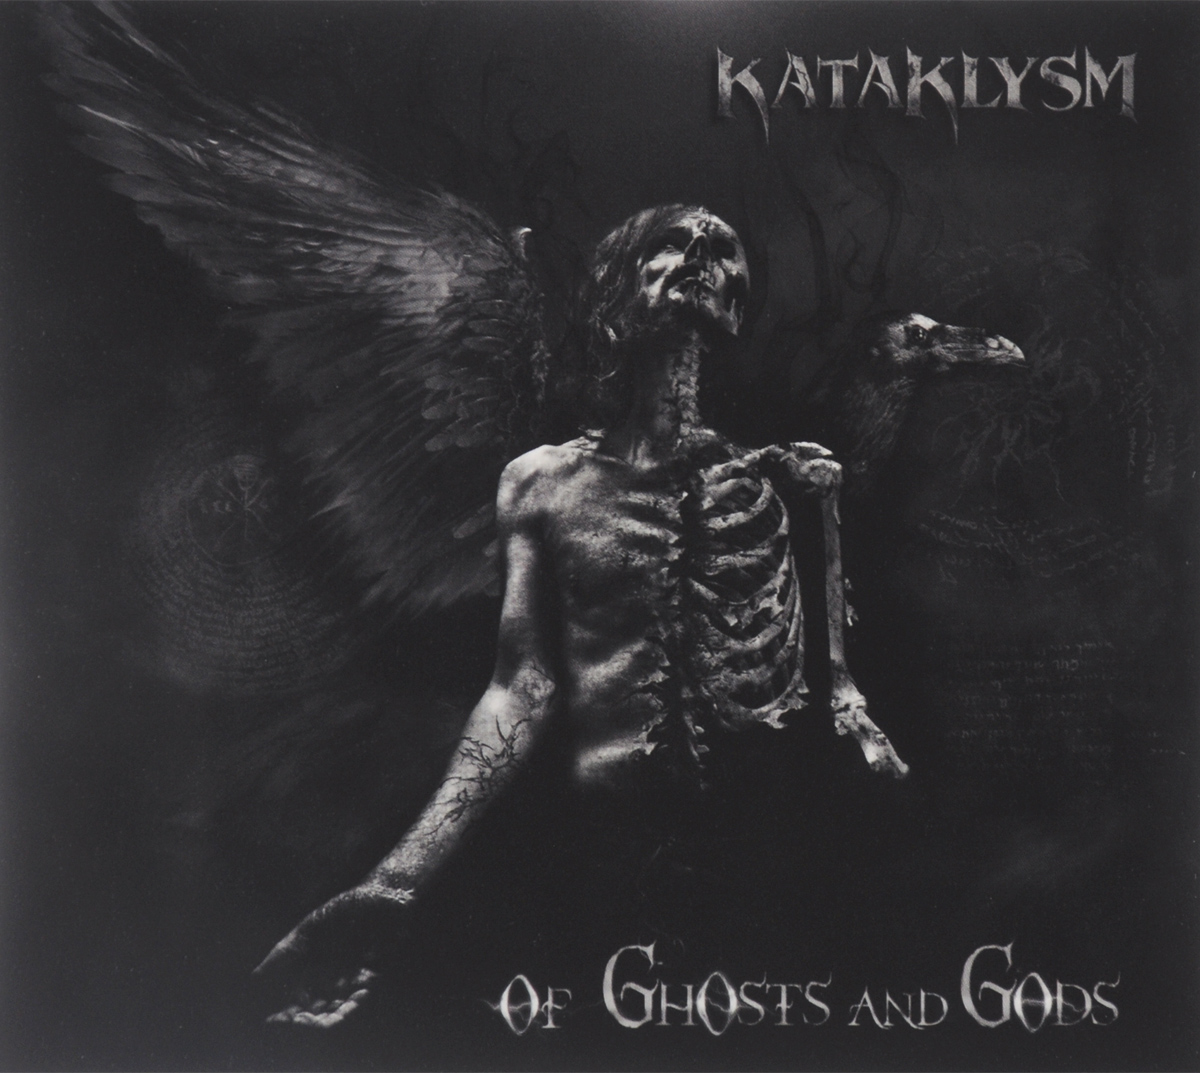 Kataklysm Kataklysm. Of Ghosts And Gods yesplay 156cm real sex dolls tpe with skeleton japanese full love doll oral vagina pussy anal realistic adult sexy toys for men